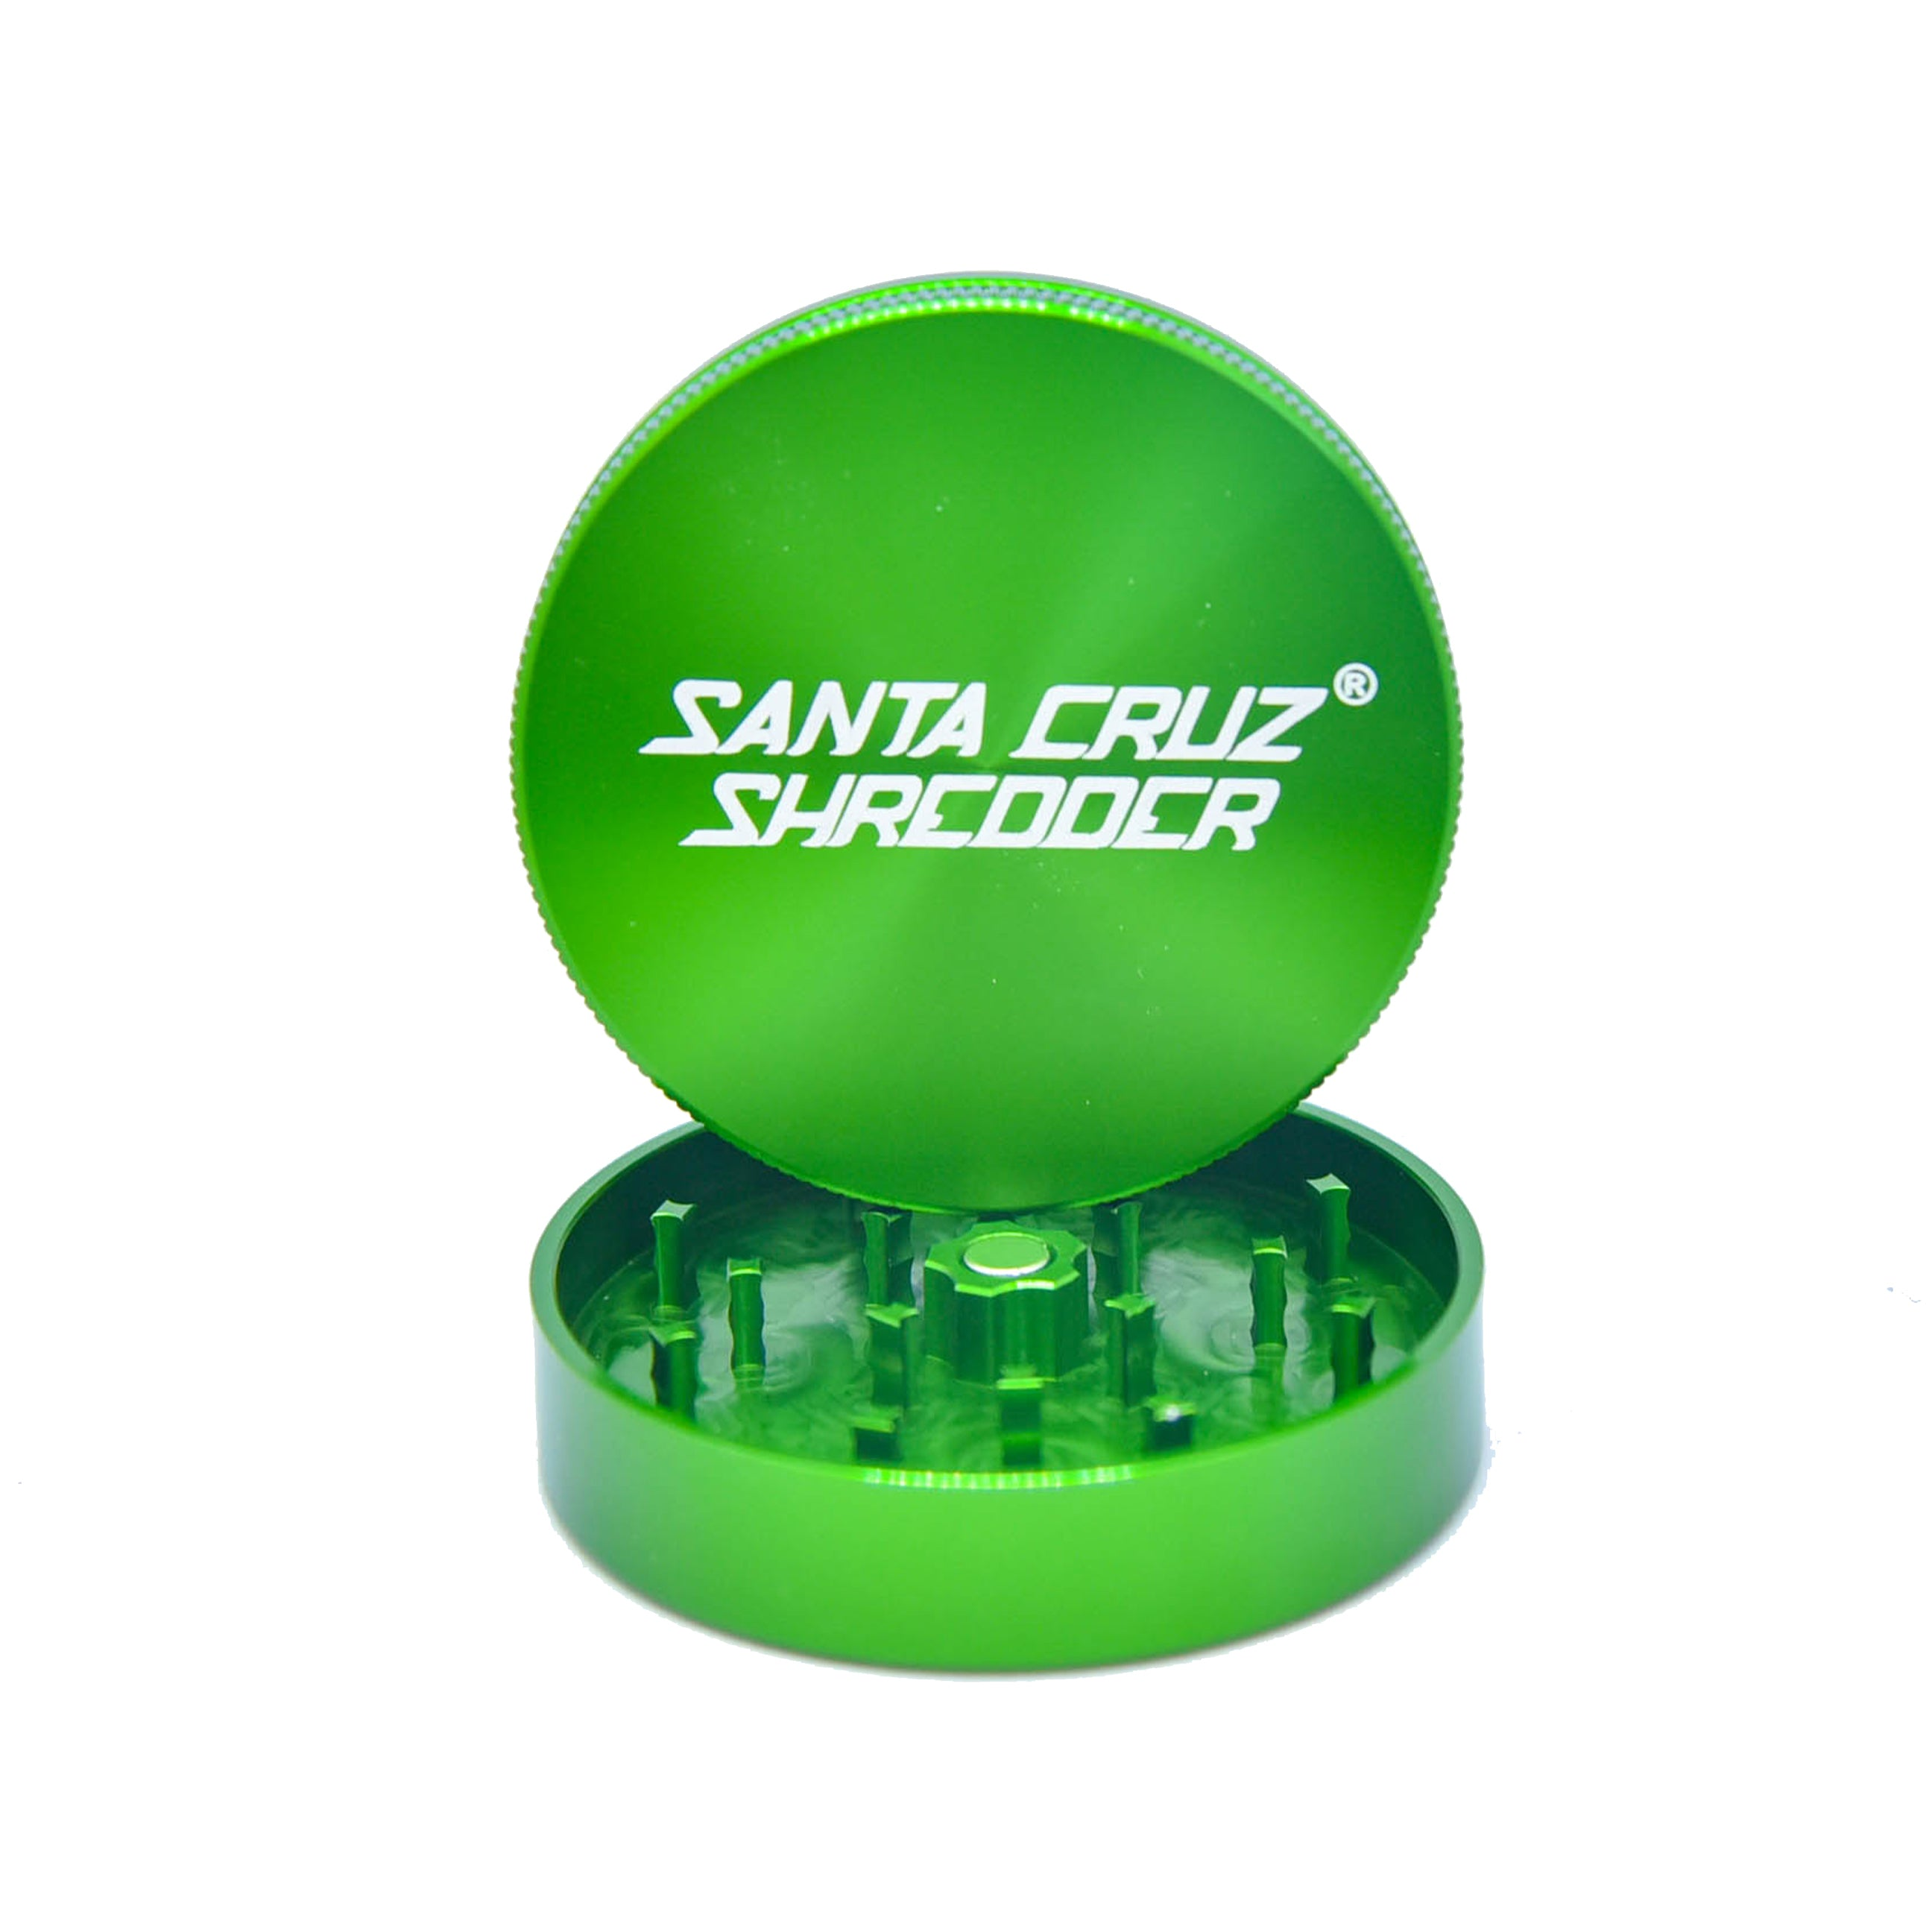 Santa Cruz Large 2-Piece Shredder